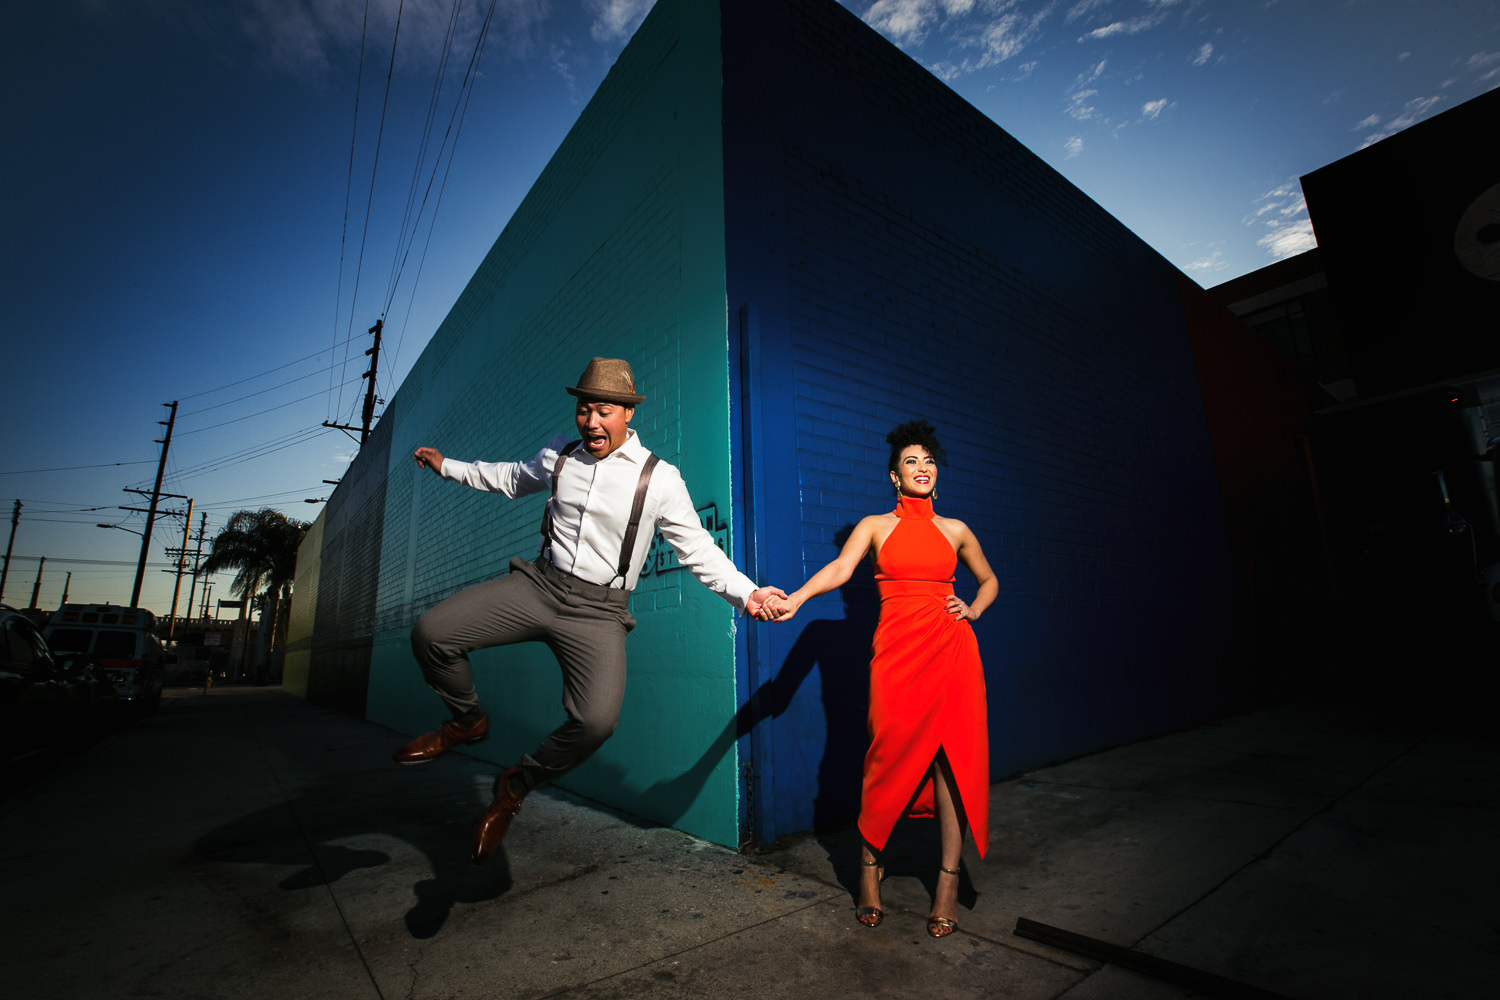 Fashionable Engagement in Downtown Los Angeles - Hand in Hand and in Love